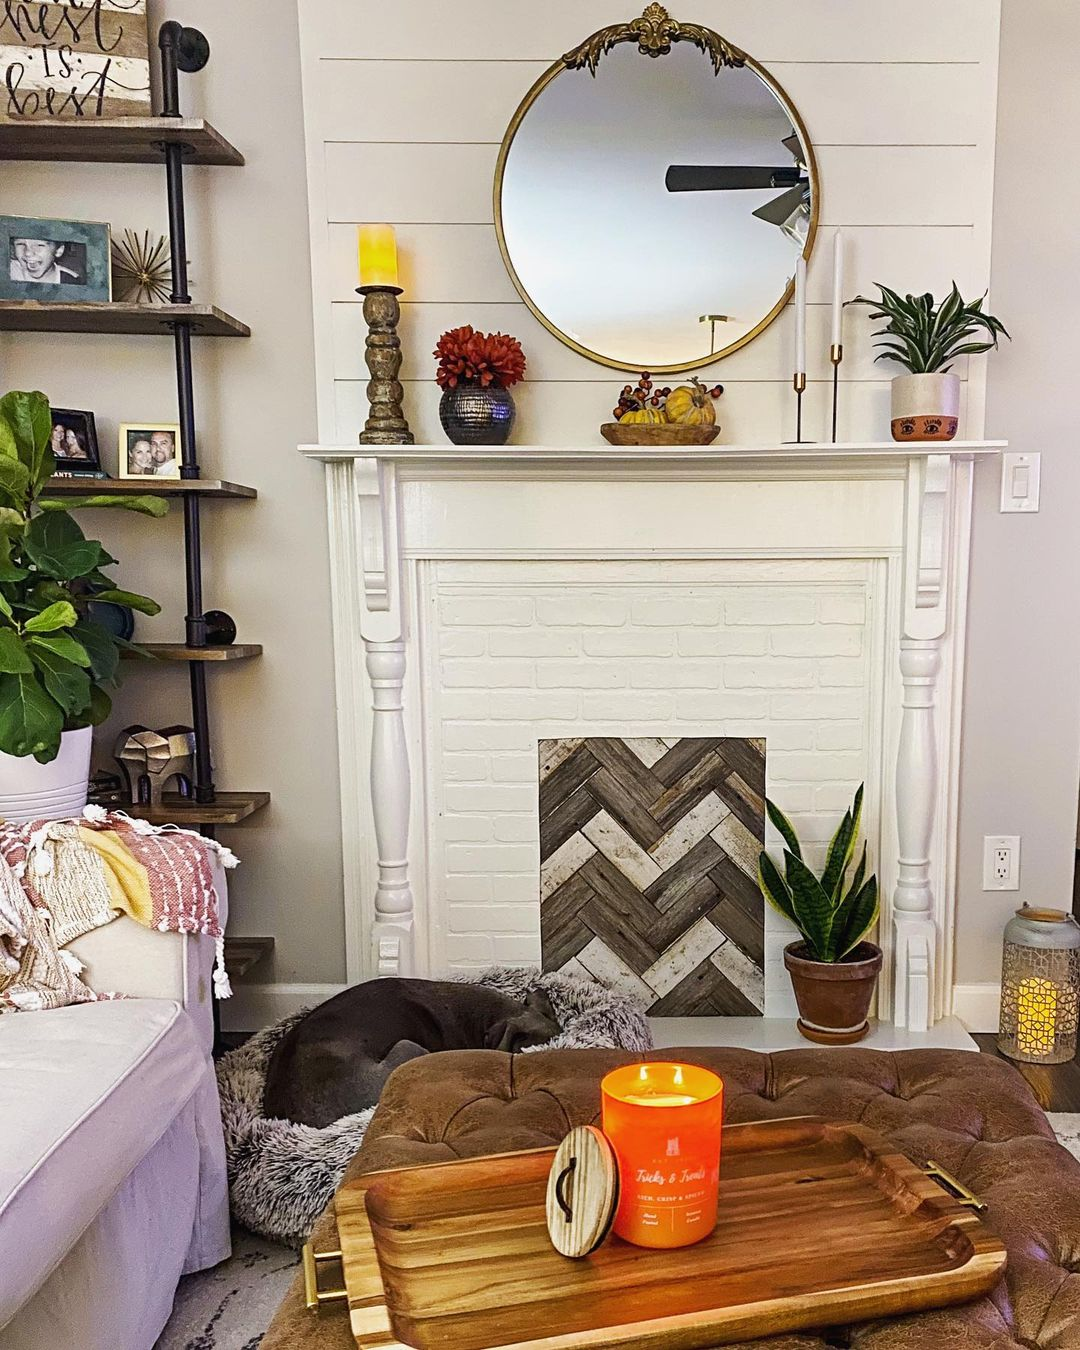 wooden chevron pattern in place of firebox for faux fireplace